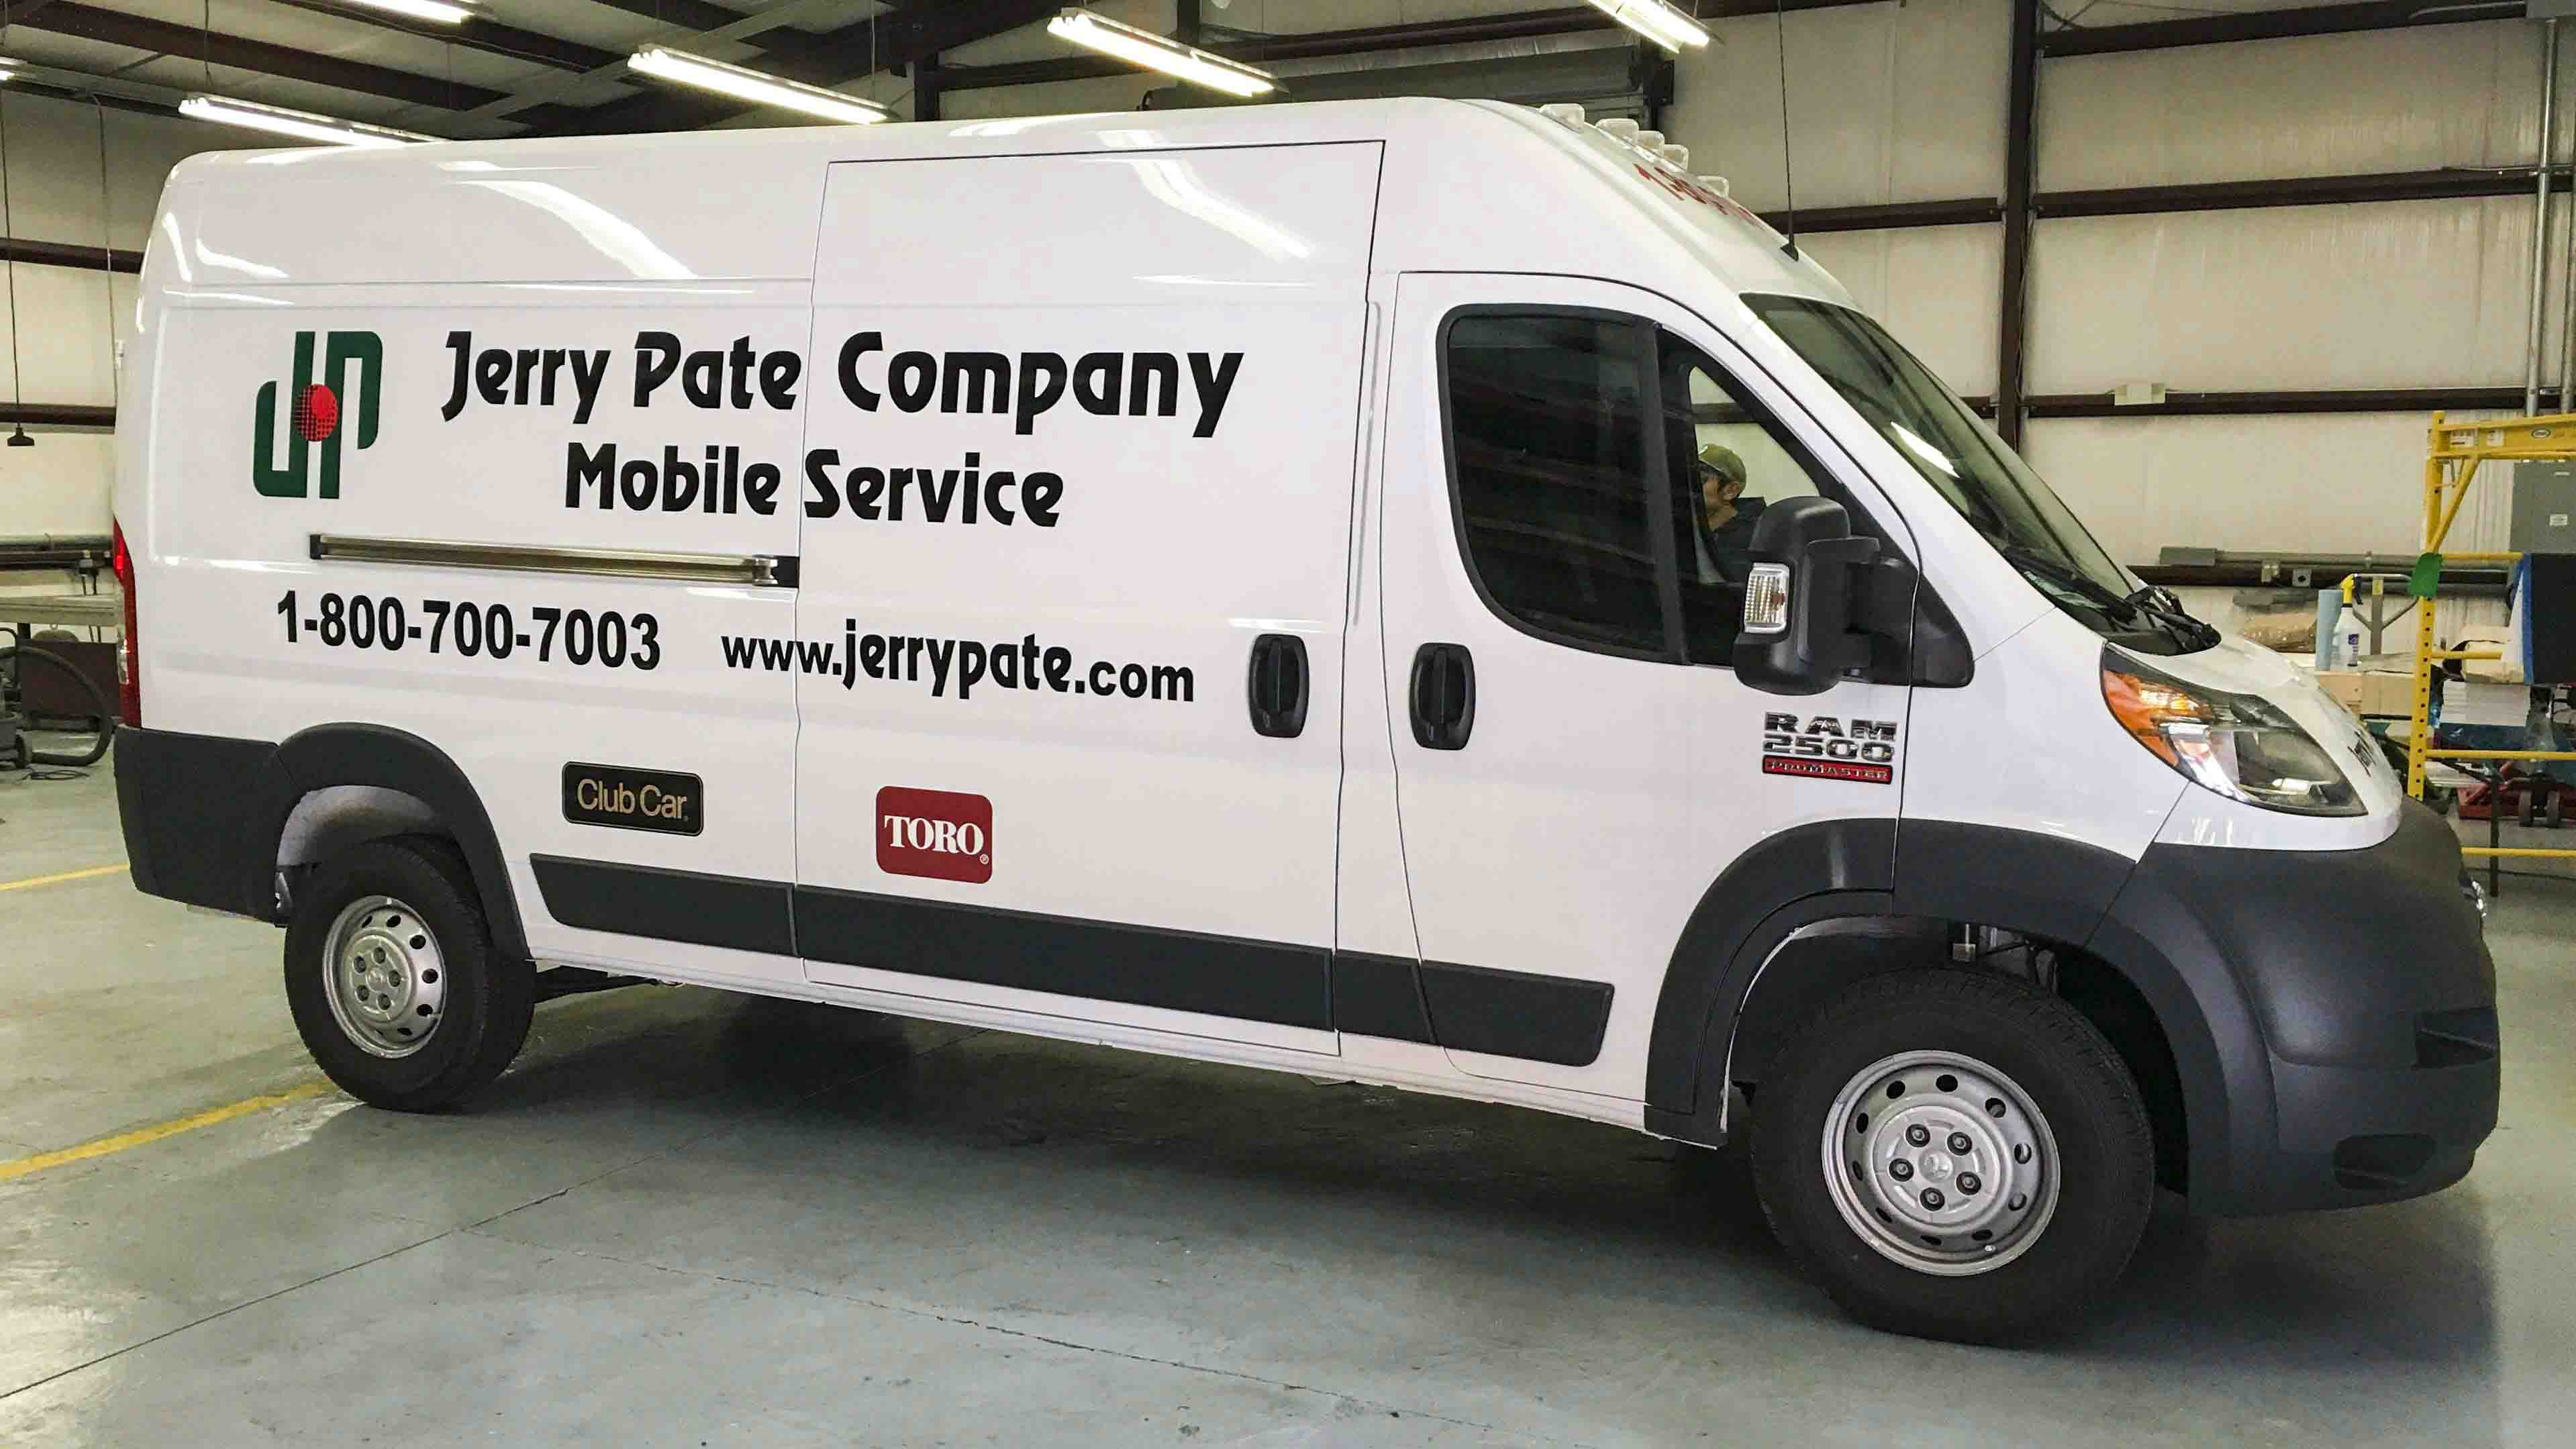 Pensacola Sign - Vehicle Graphics - Graphics for Jerry Pate Company